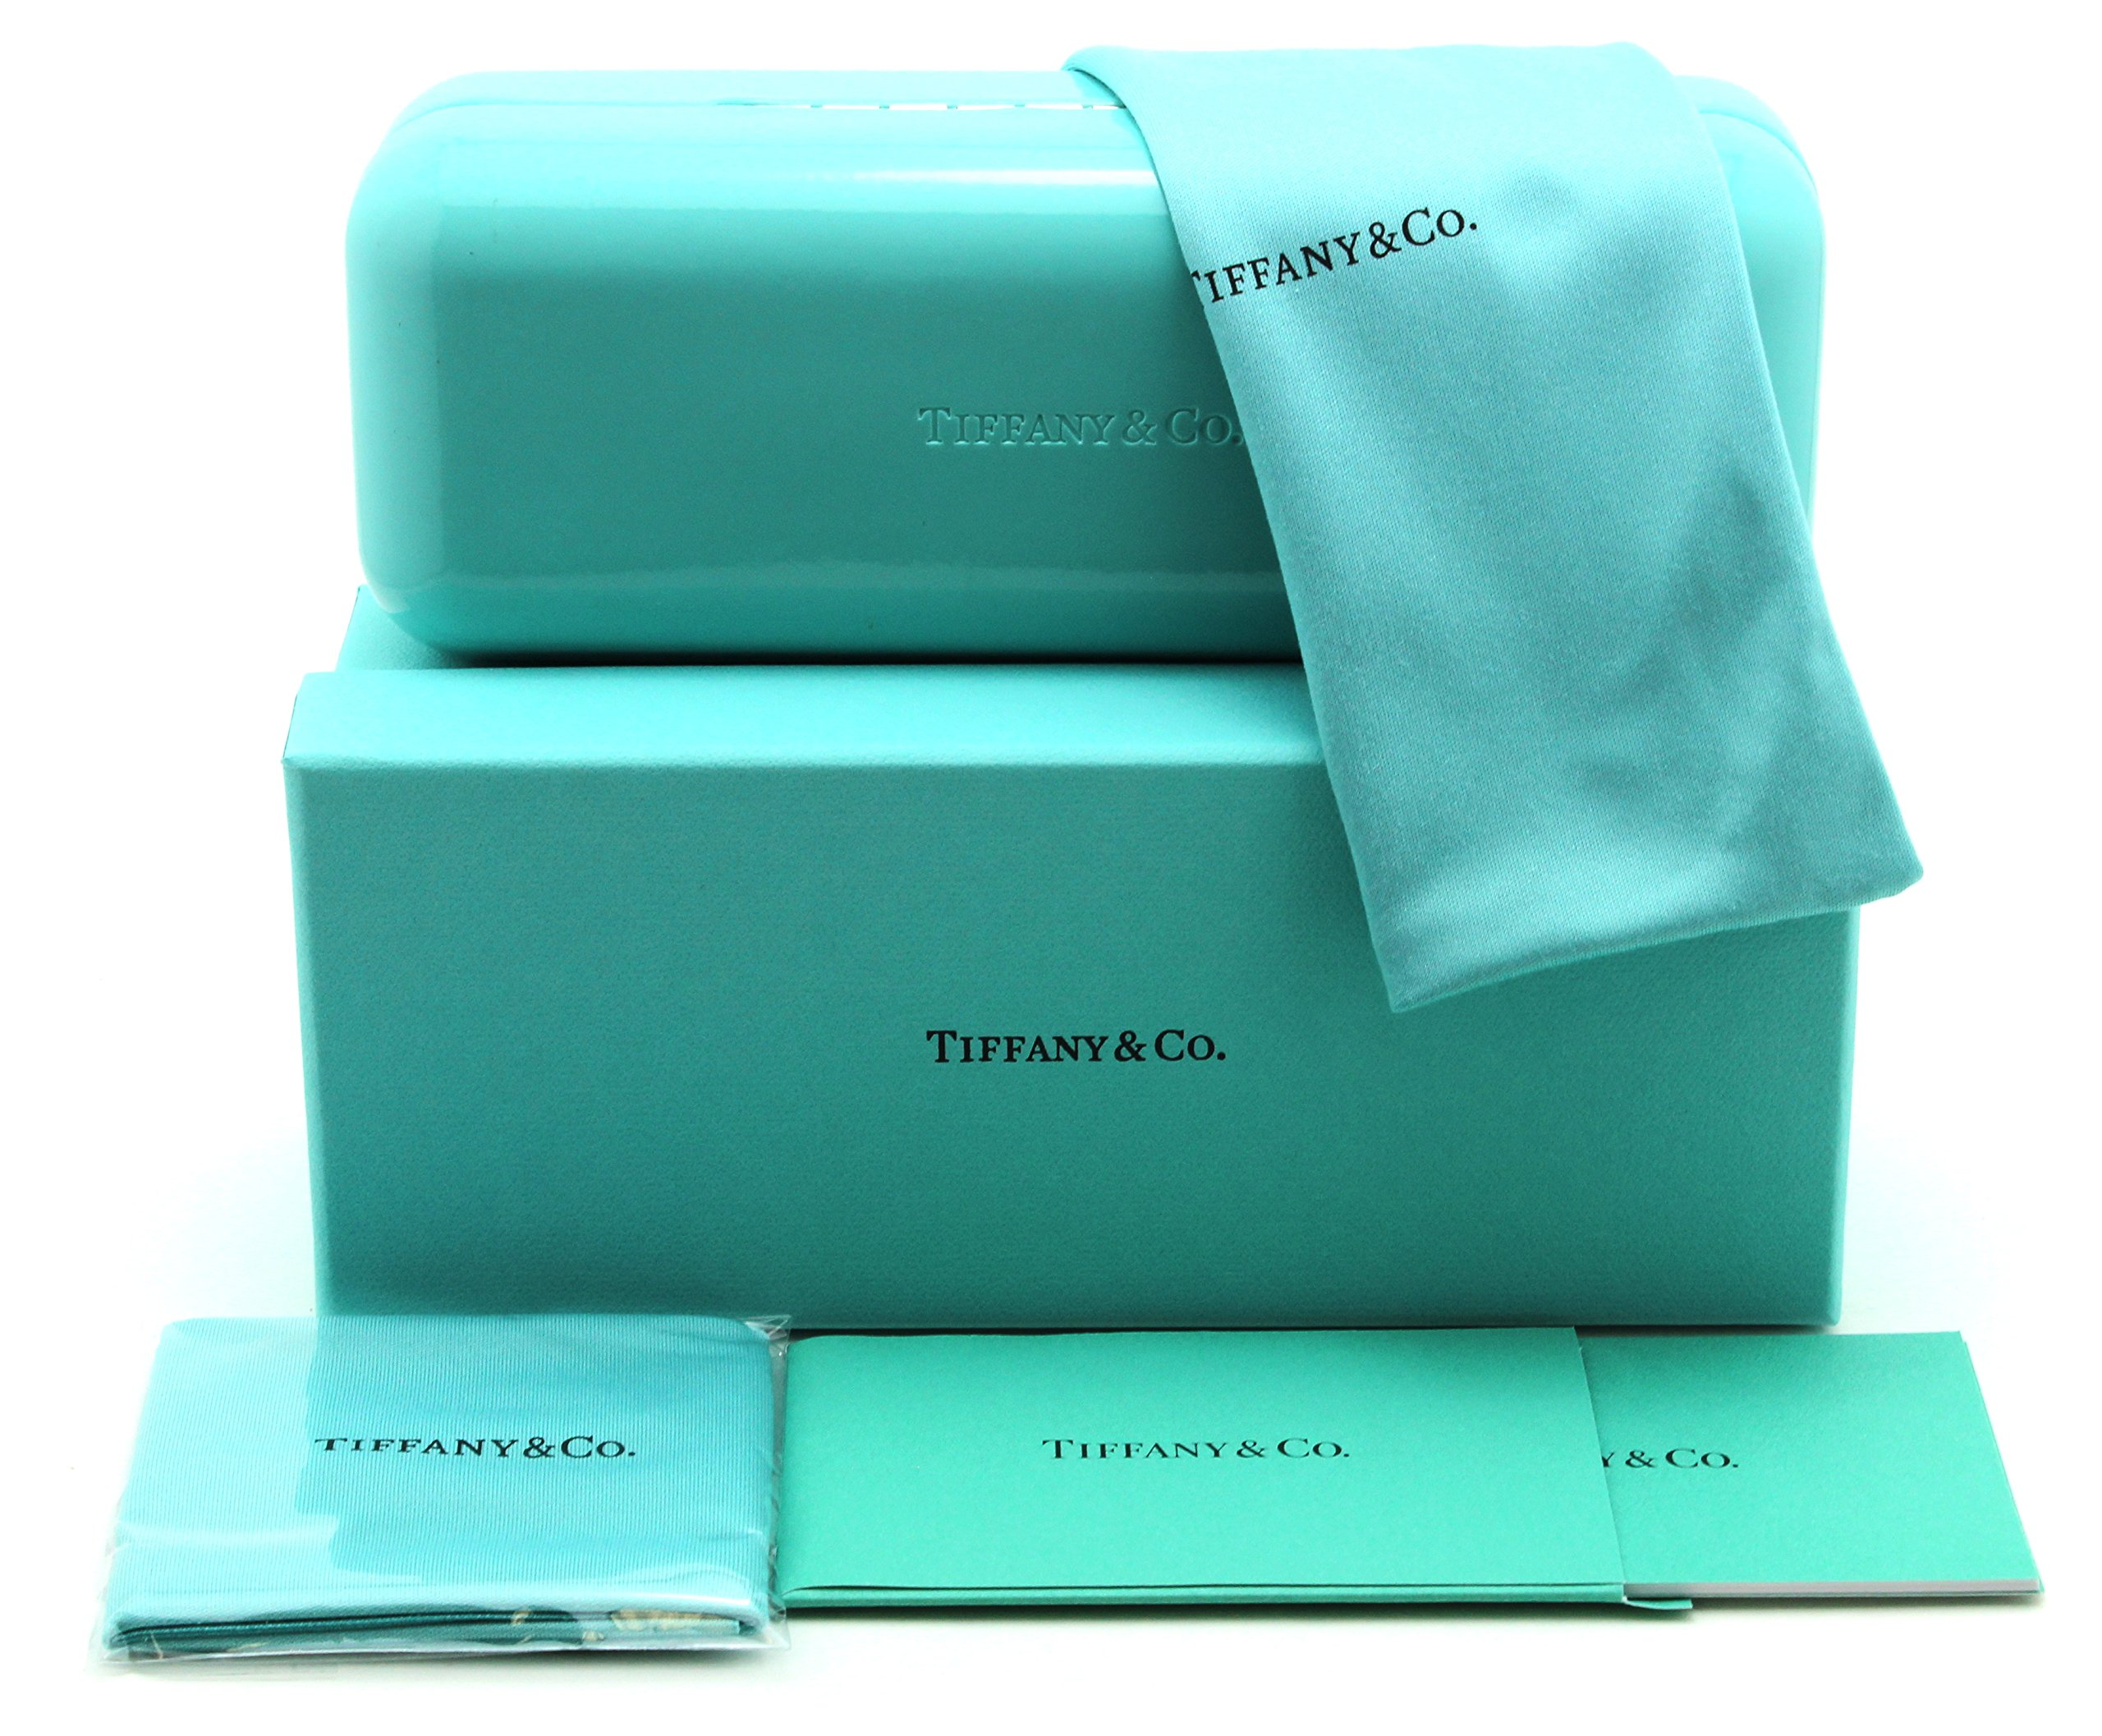 Tiffany & Co. TF 4135-B-F Women Square Asian Fit Sunglasses (Blue Gradient 80559S, 56) by Tiffany & Co. (Image #3)